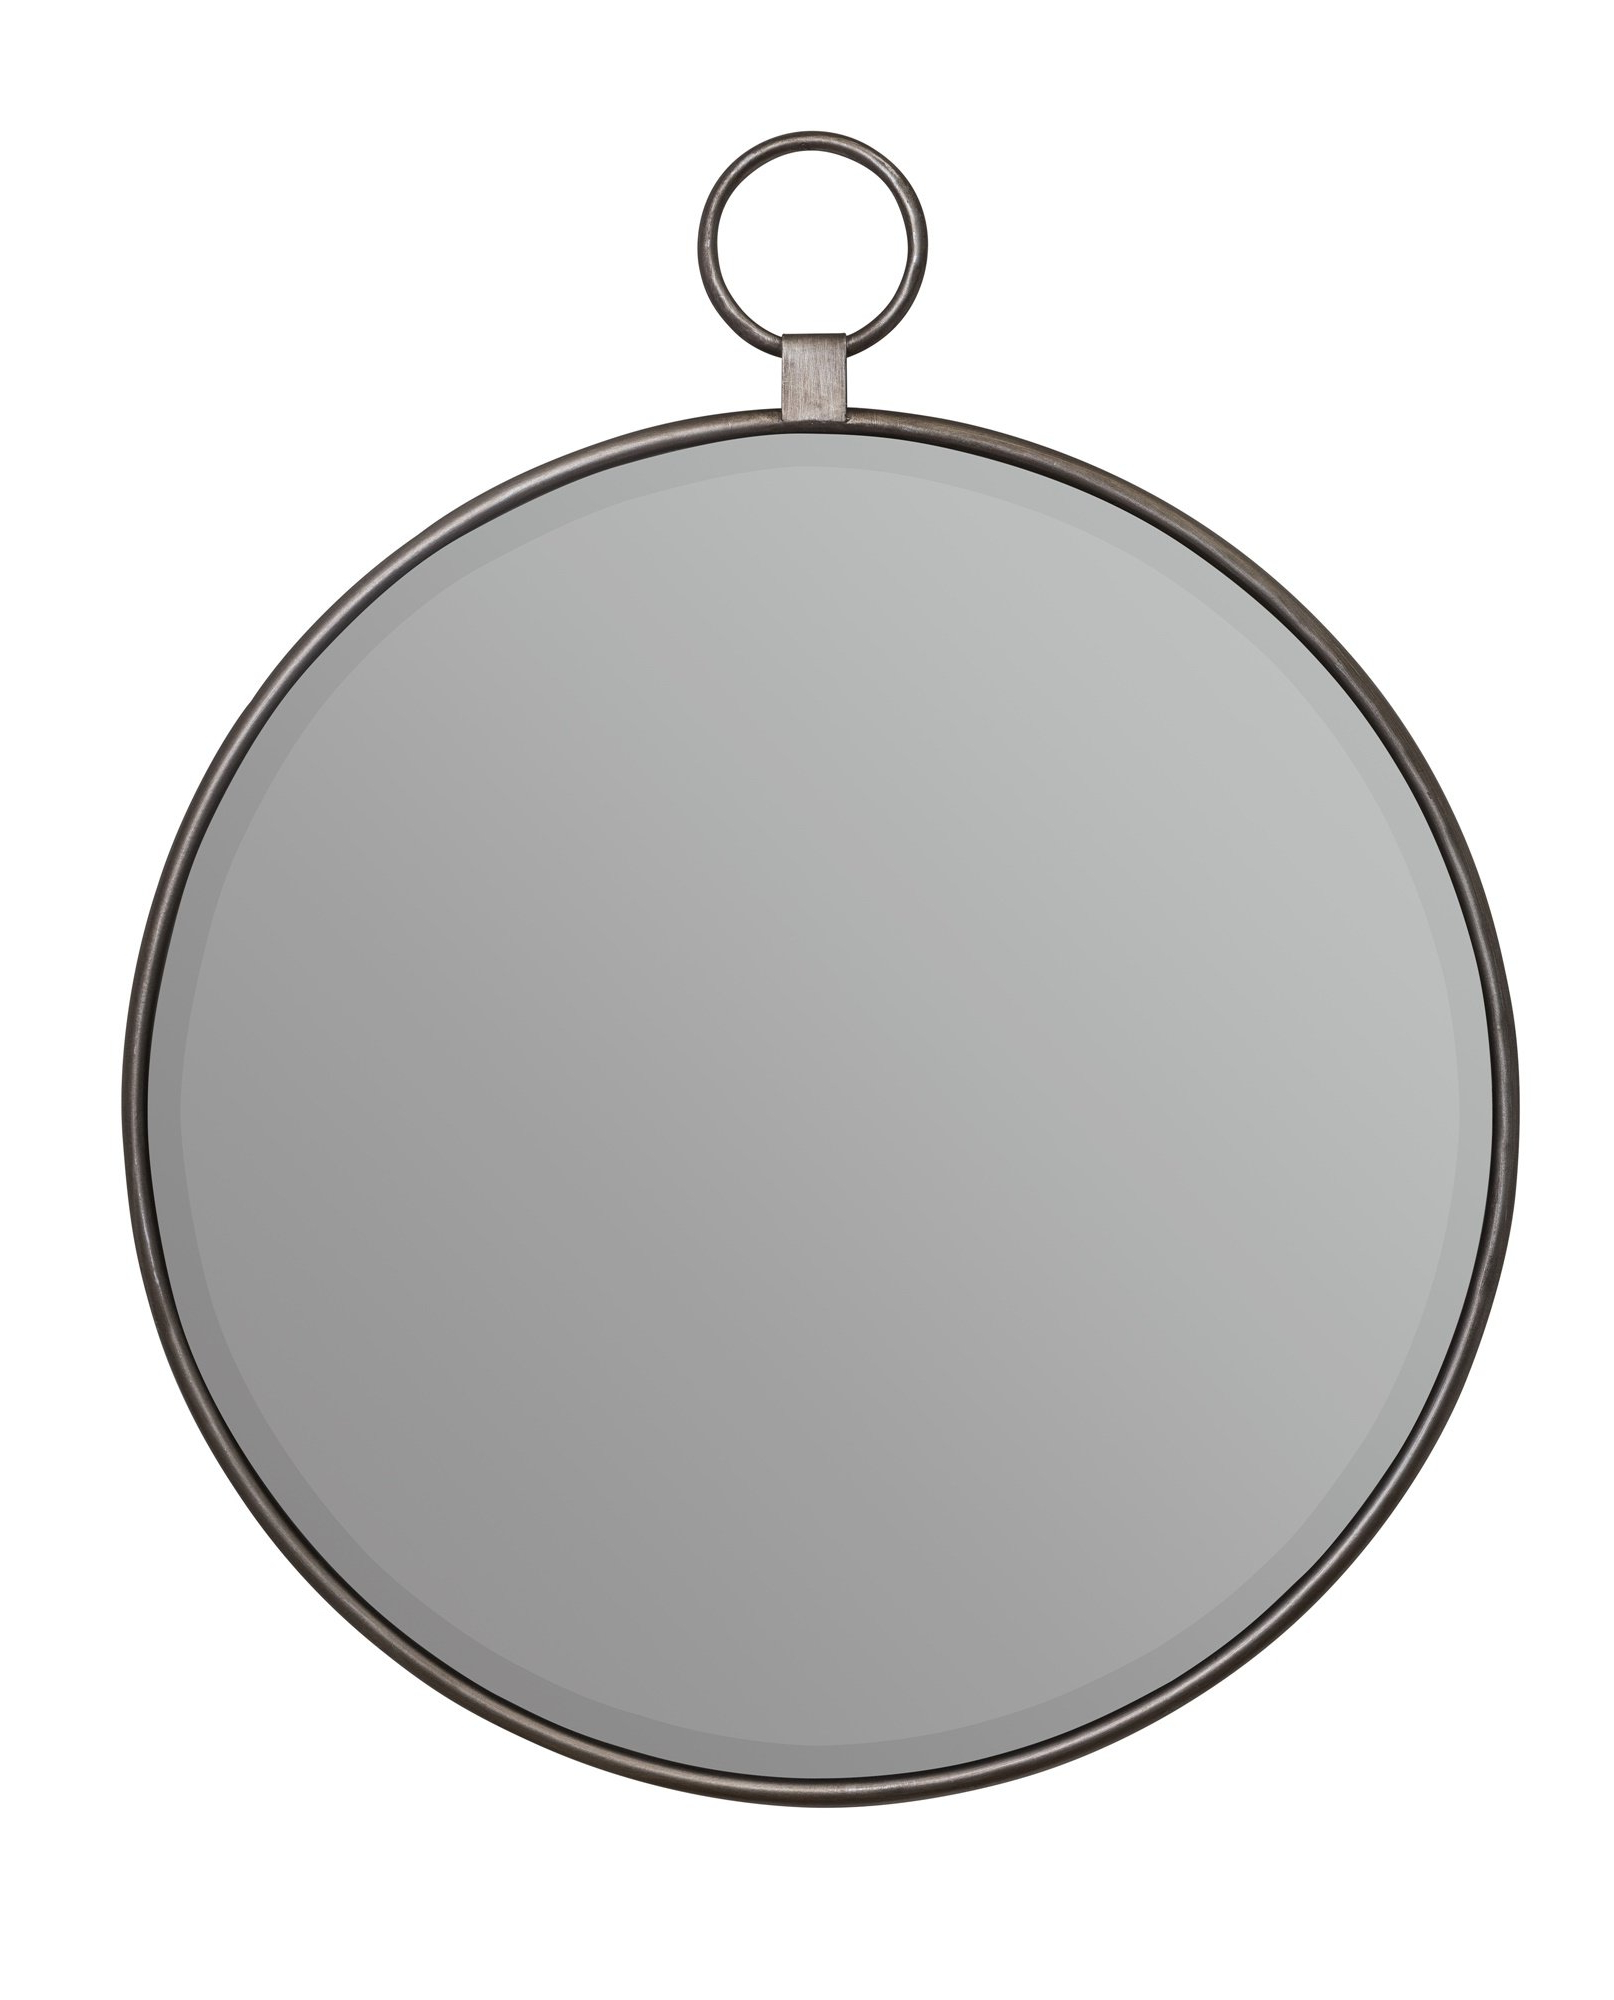 Matthias Round Accent Mirror Throughout Trendy Matthias Round Accent Mirrors (View 3 of 20)